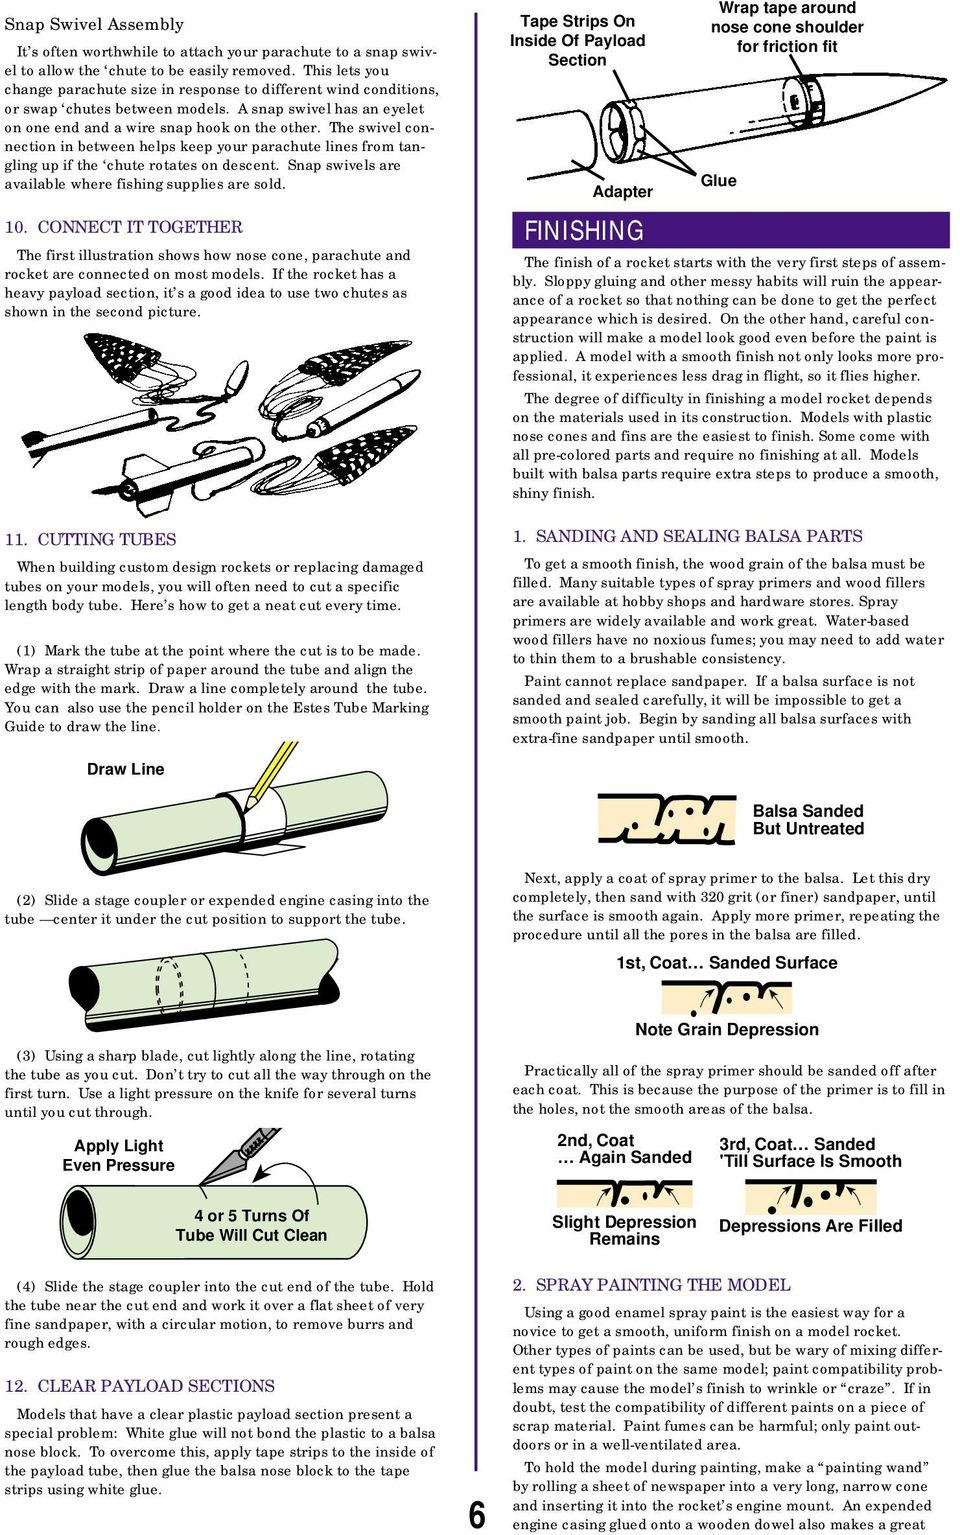 Model Rocketry Technical Manual Pdf Barrel Swivel With Interlock Snap Pioneer No 5 7 The Connection In Between Helps Keep Your Parachute Lines From Tangling Up If Chute